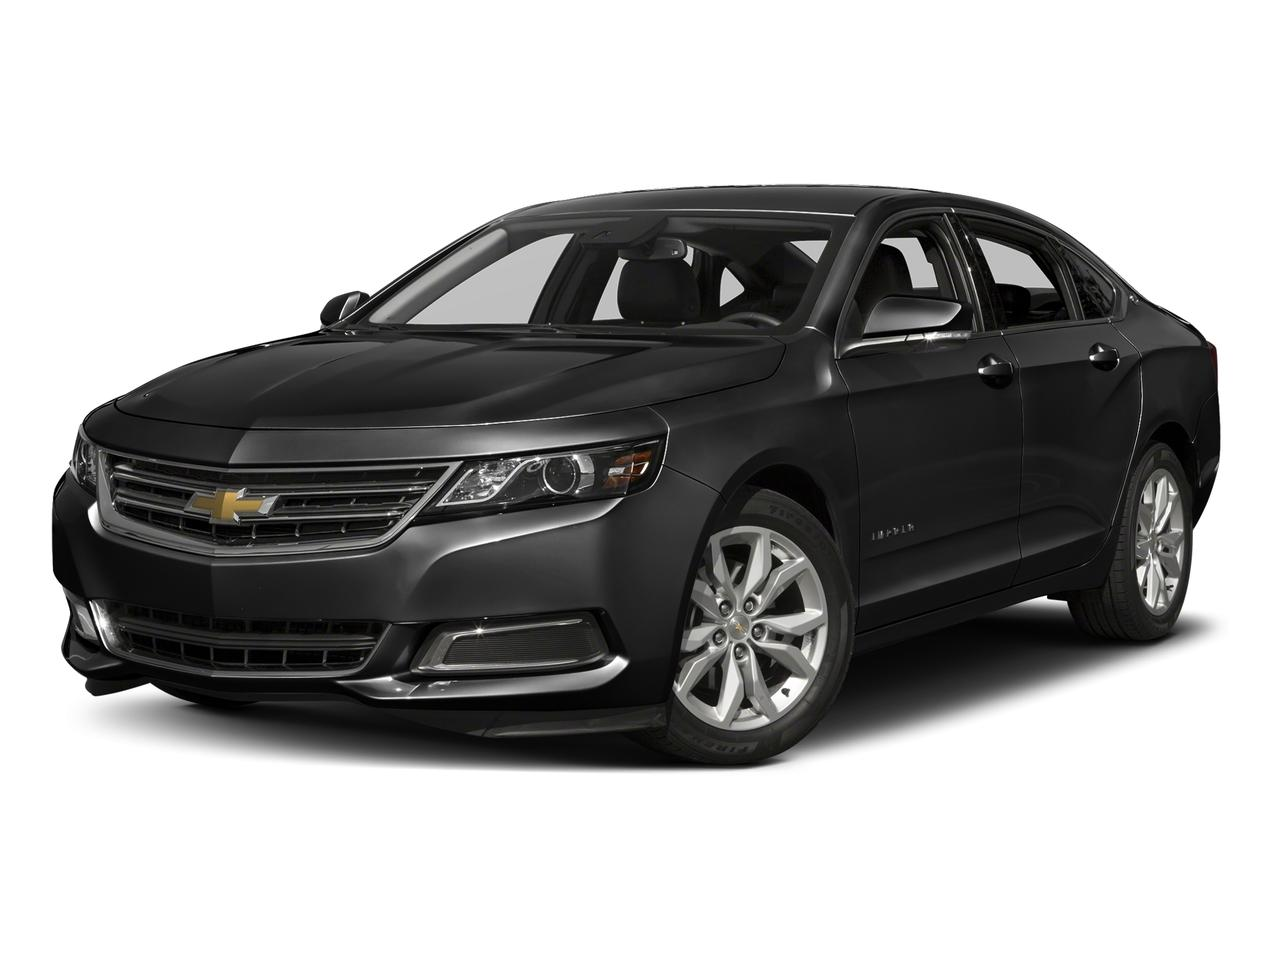 2018 Chevrolet Impala Vehicle Photo in Darlington, SC 29532